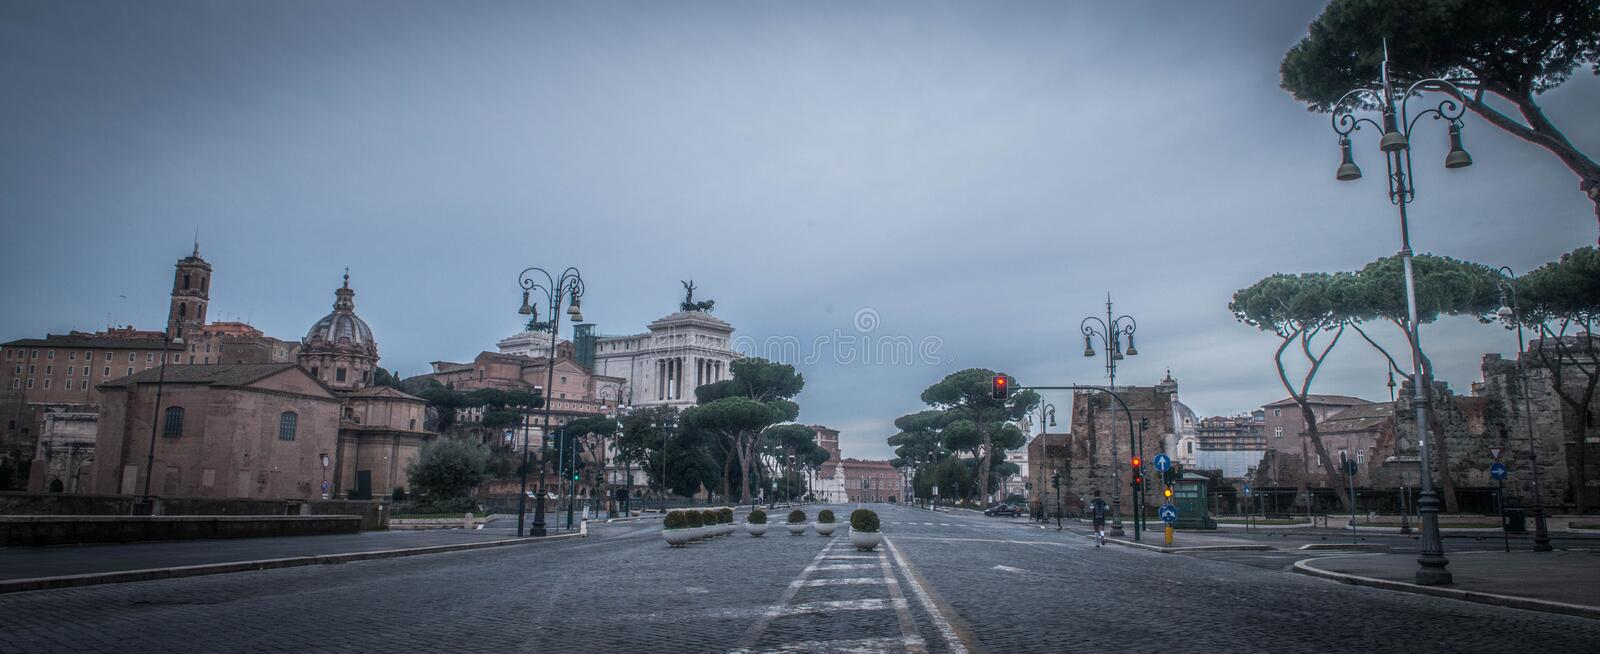 The National Monument to Victor Emmanuel II royalty free stock photos